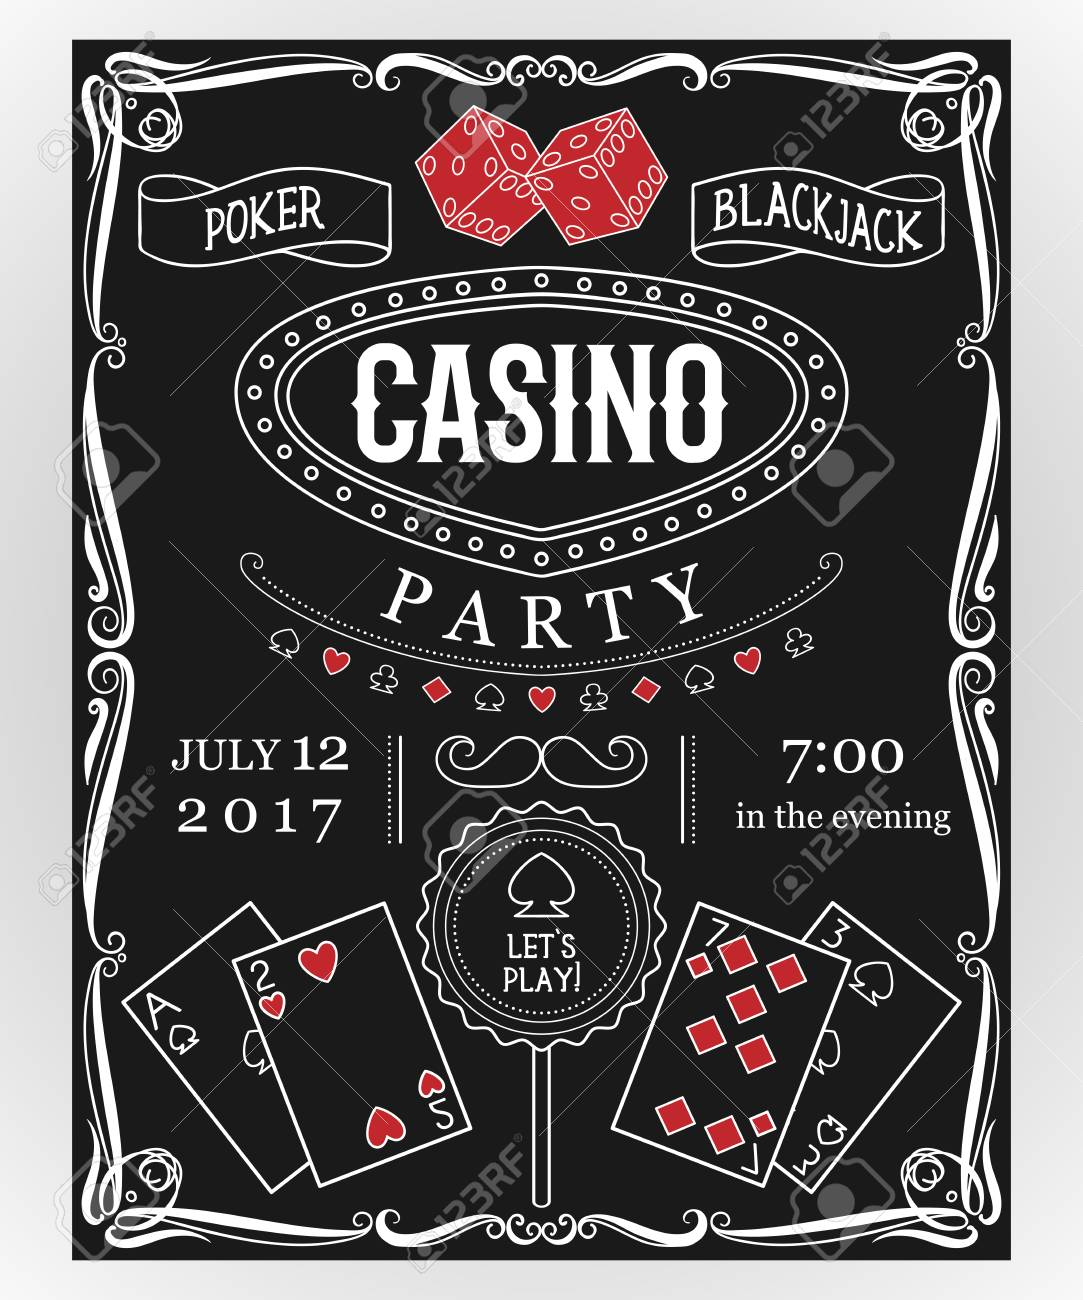 Casino party invitation on chalkboard with decorative elements. Vintage vector illustration - 81385348